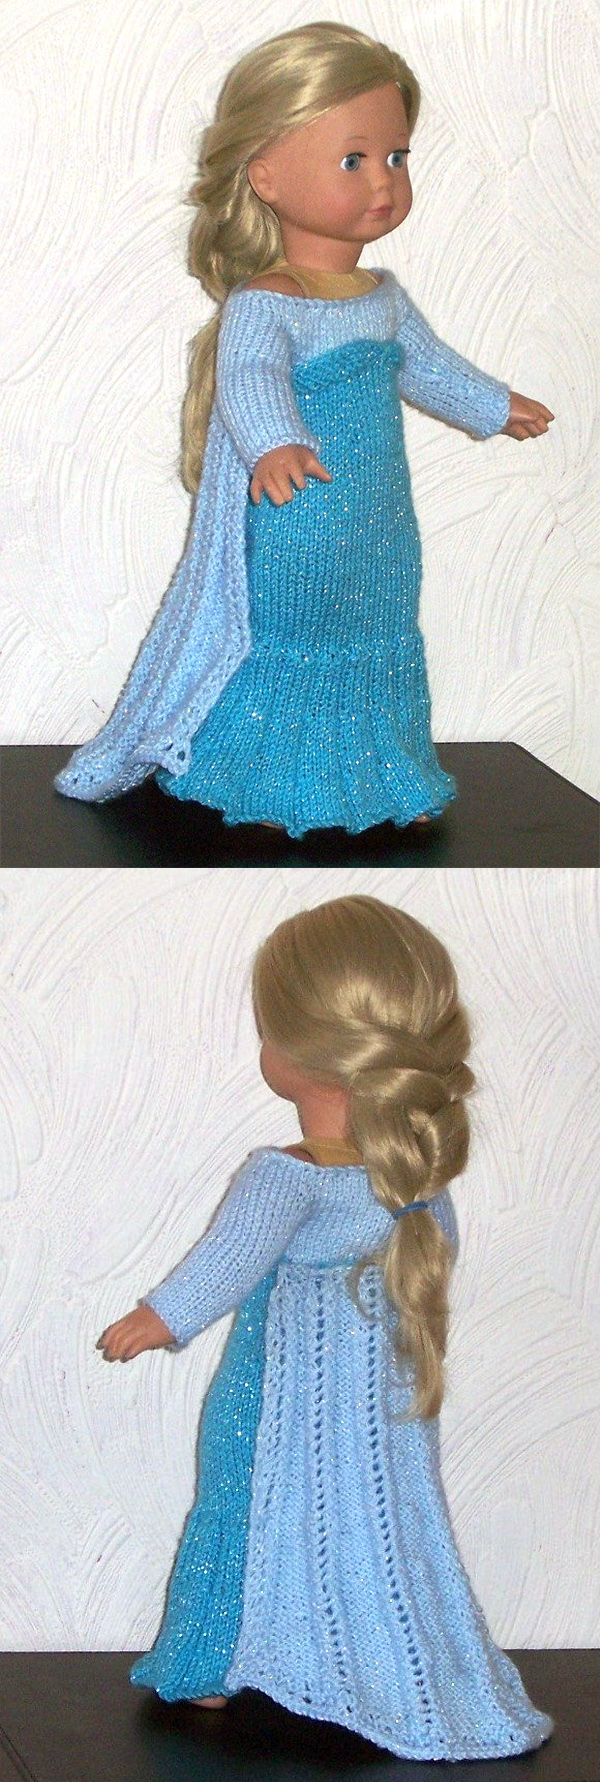 Queen Elsa Doll Costume Knitting pattern by Sylvia Schofield | Frozen Inspired Knitting Patterns at http://intheloopknitting.com/frozen-knitting-patterns